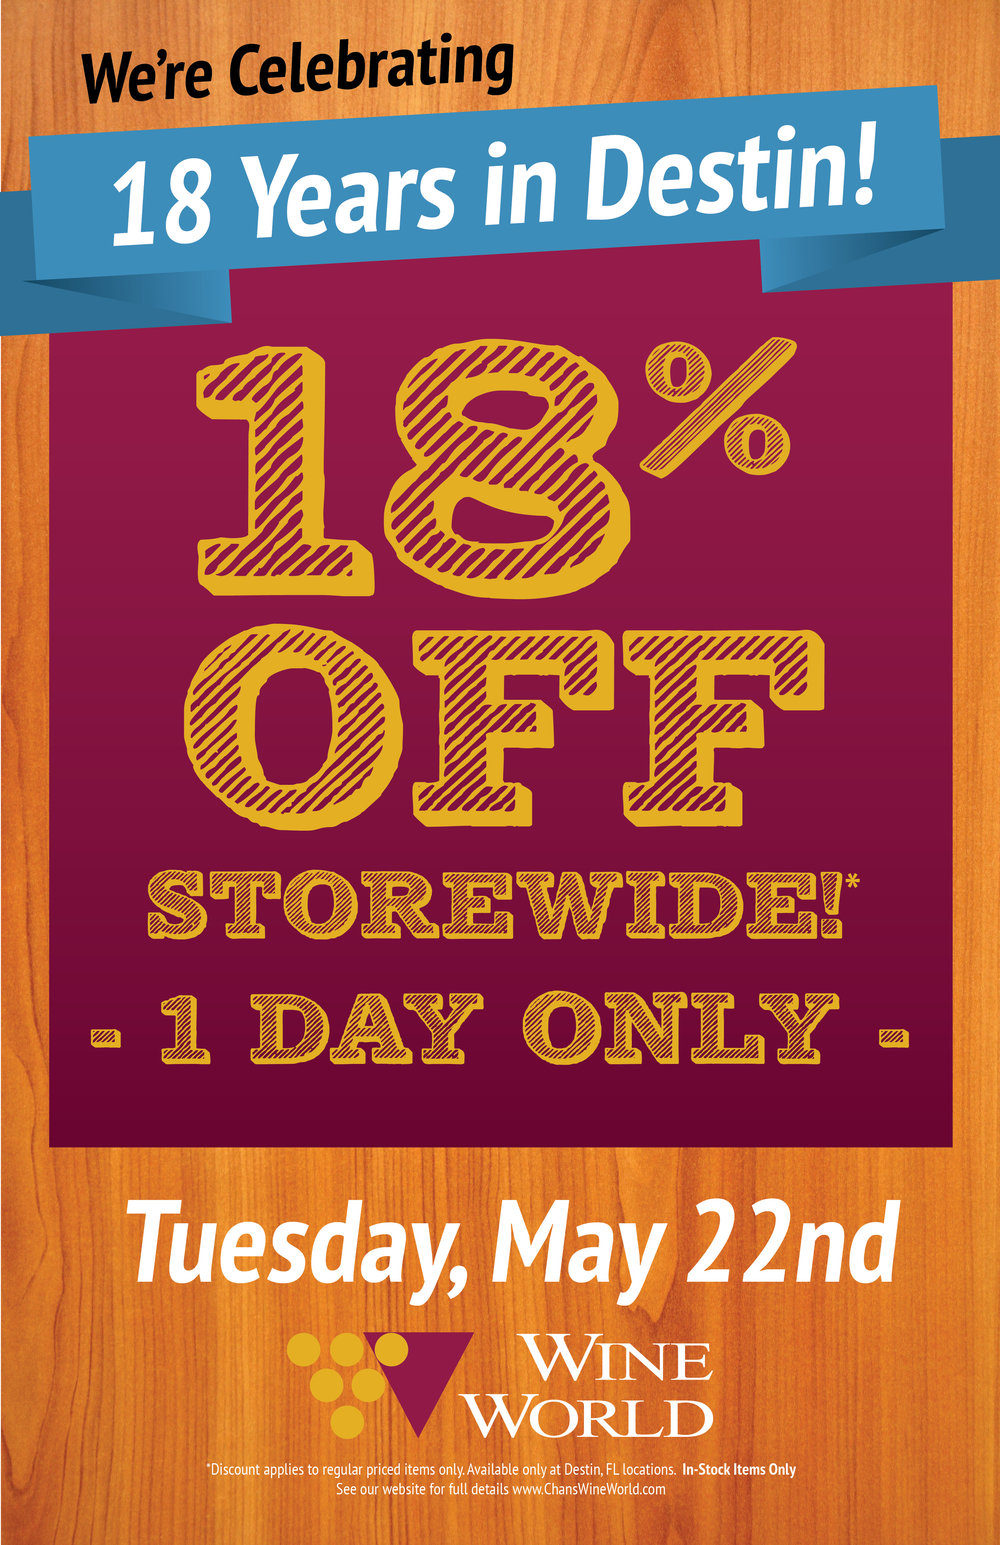 **Valid ONLY in DESTIN location. 05/22/2018. Cannot be combined with other offers or discounts. Regularly priced, in-stock items only. Beer offer valid only in The Craft Bar DESTIN location as part of a buy-one-get-one offer. Must present coupon received at checkout in retail.